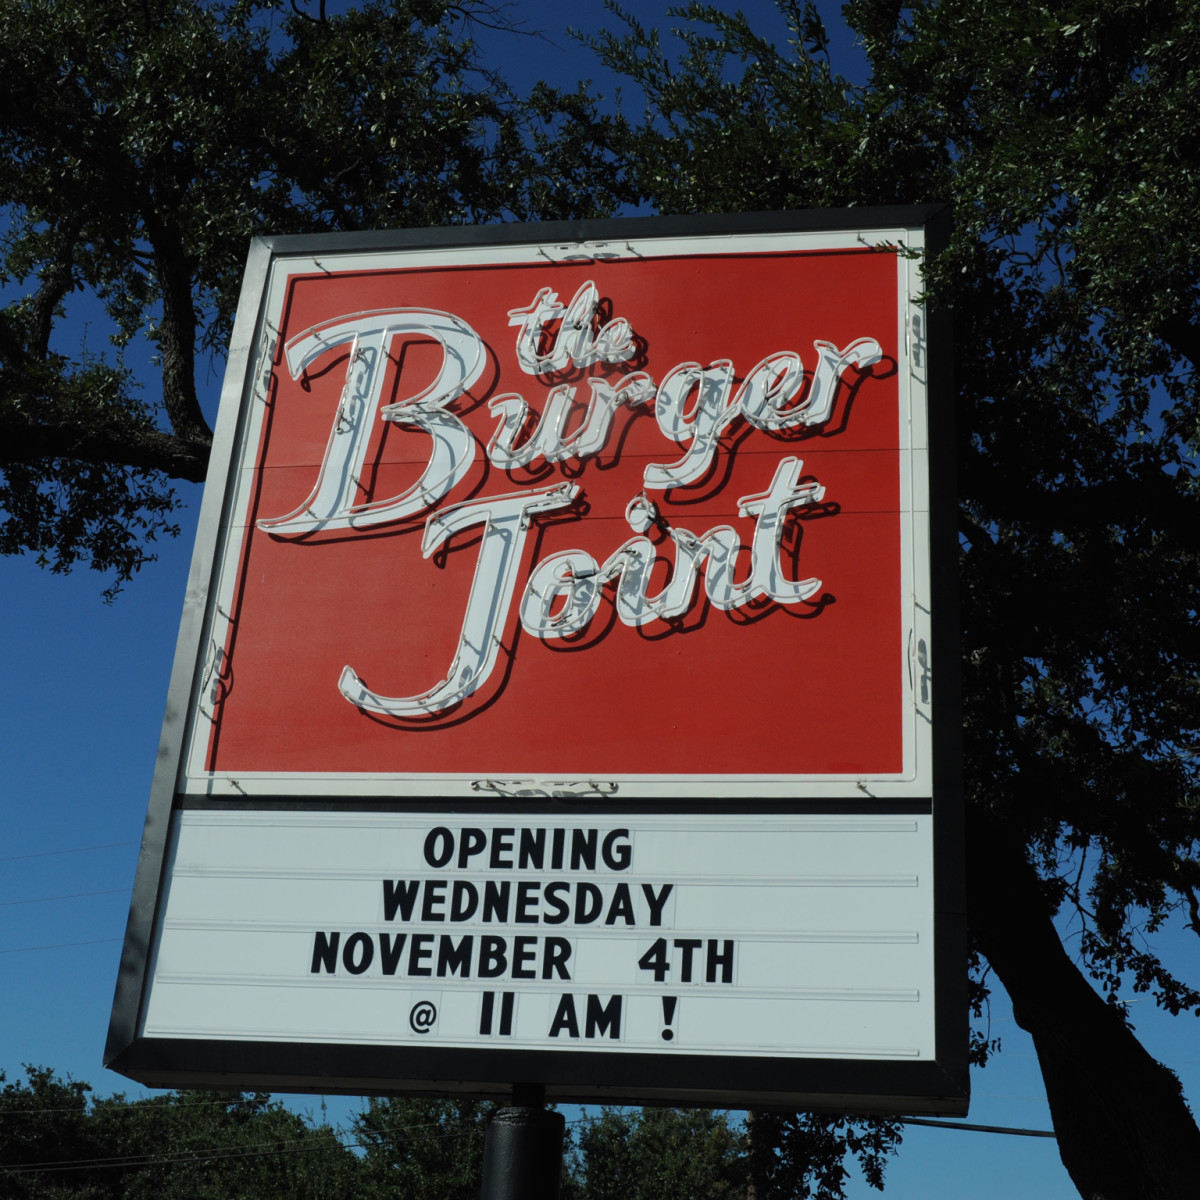 The Burger Joint sign